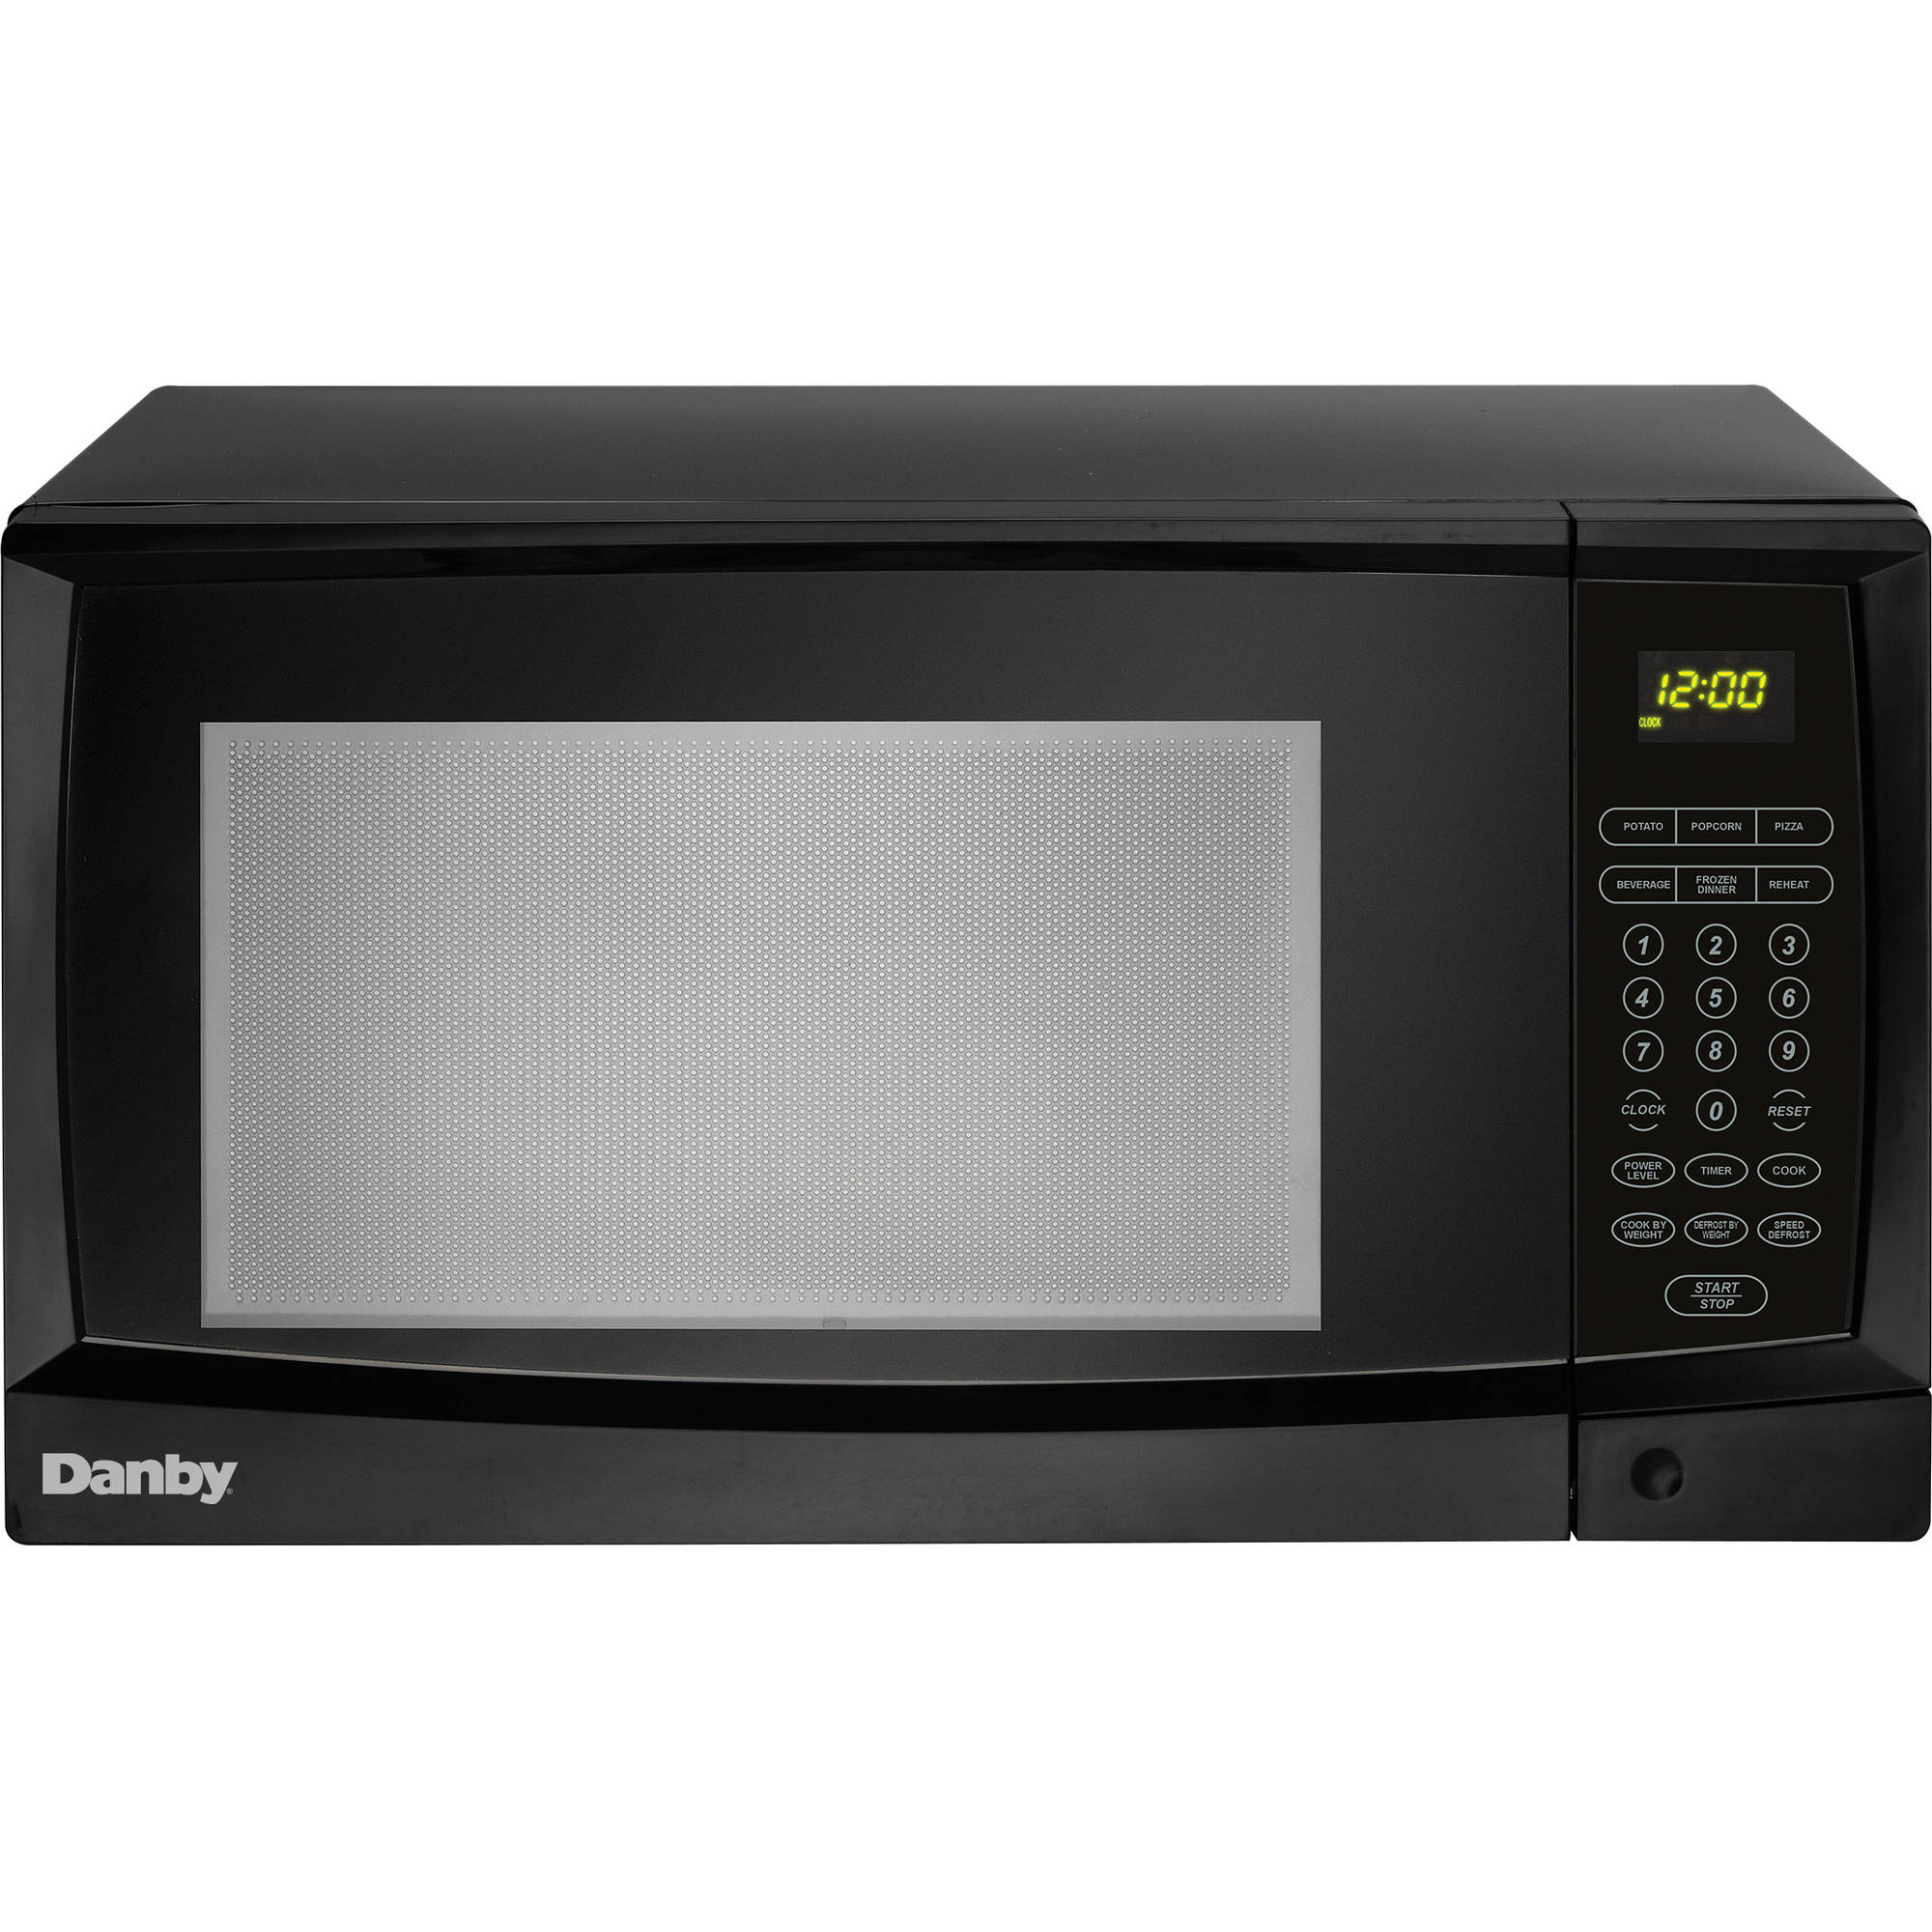 Danby Ft Cu 1 1 Microwave Black